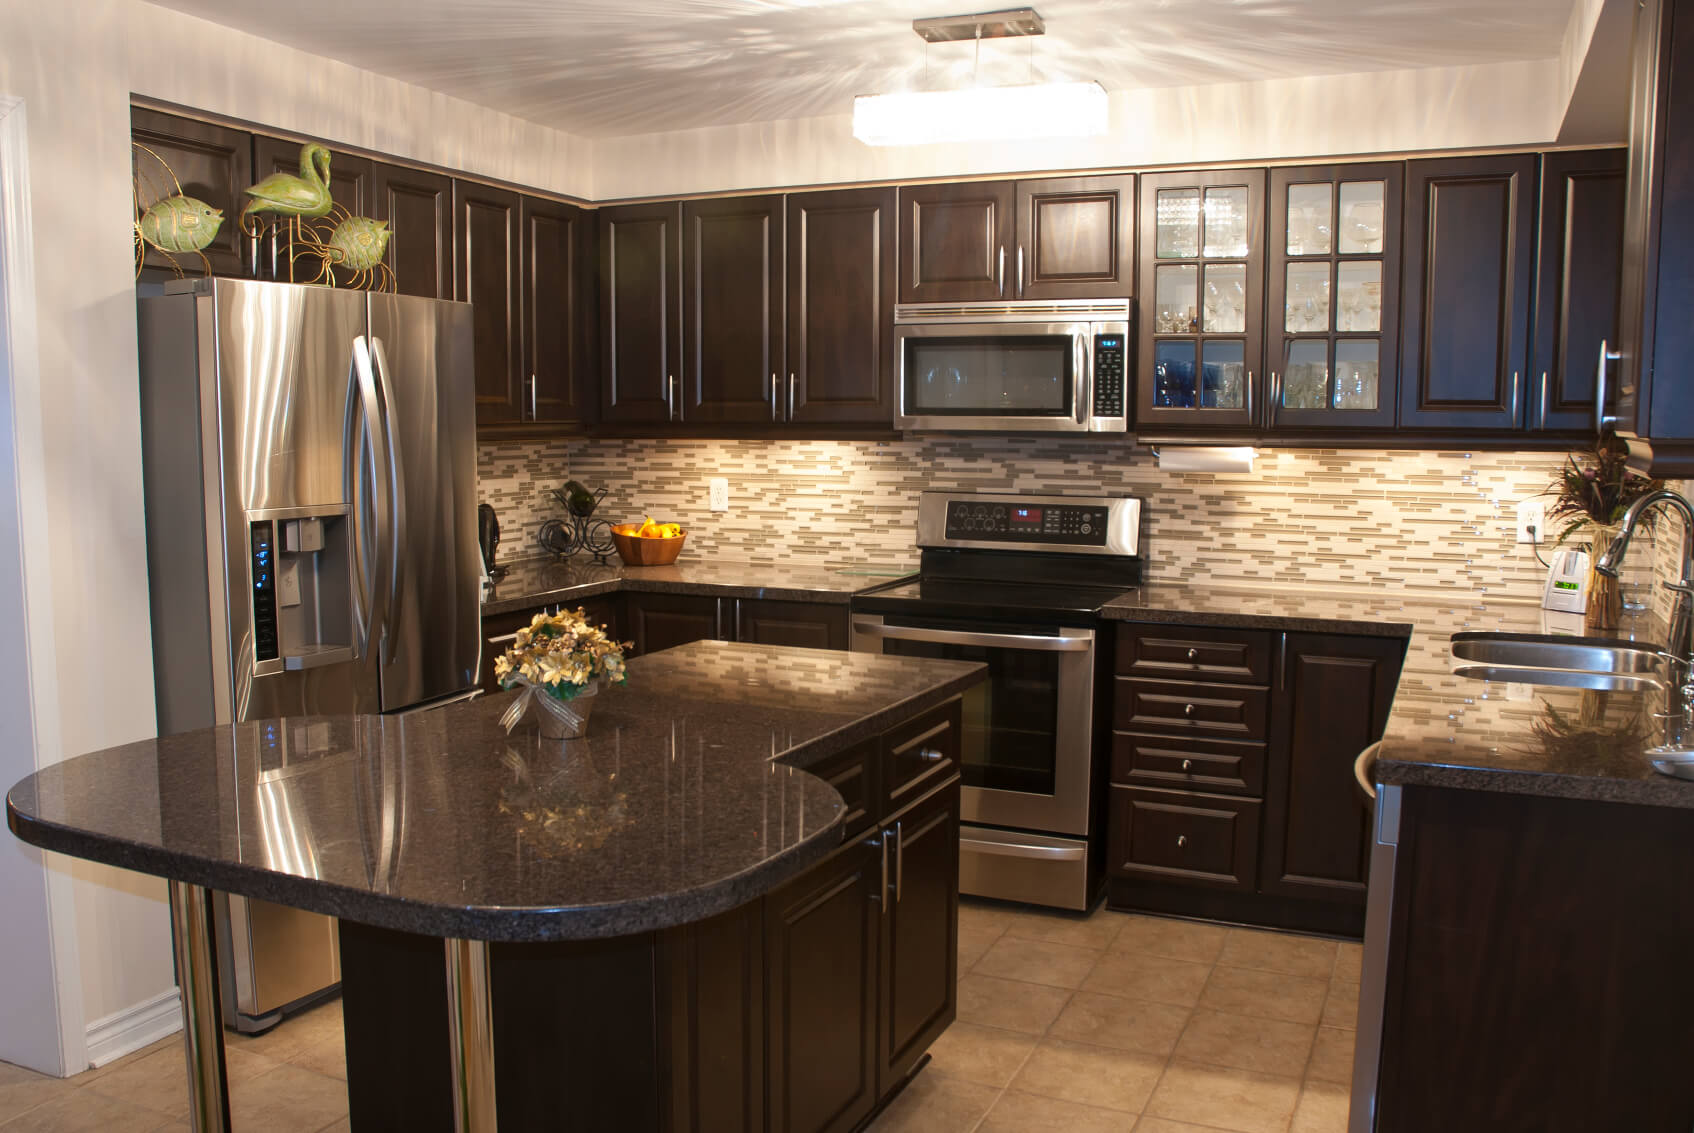 dark kitchen cabinets kitchen counters and backsplash Cozy kitchen is stuffed with dark wood cabinetry with brushed metal hardware Black marble